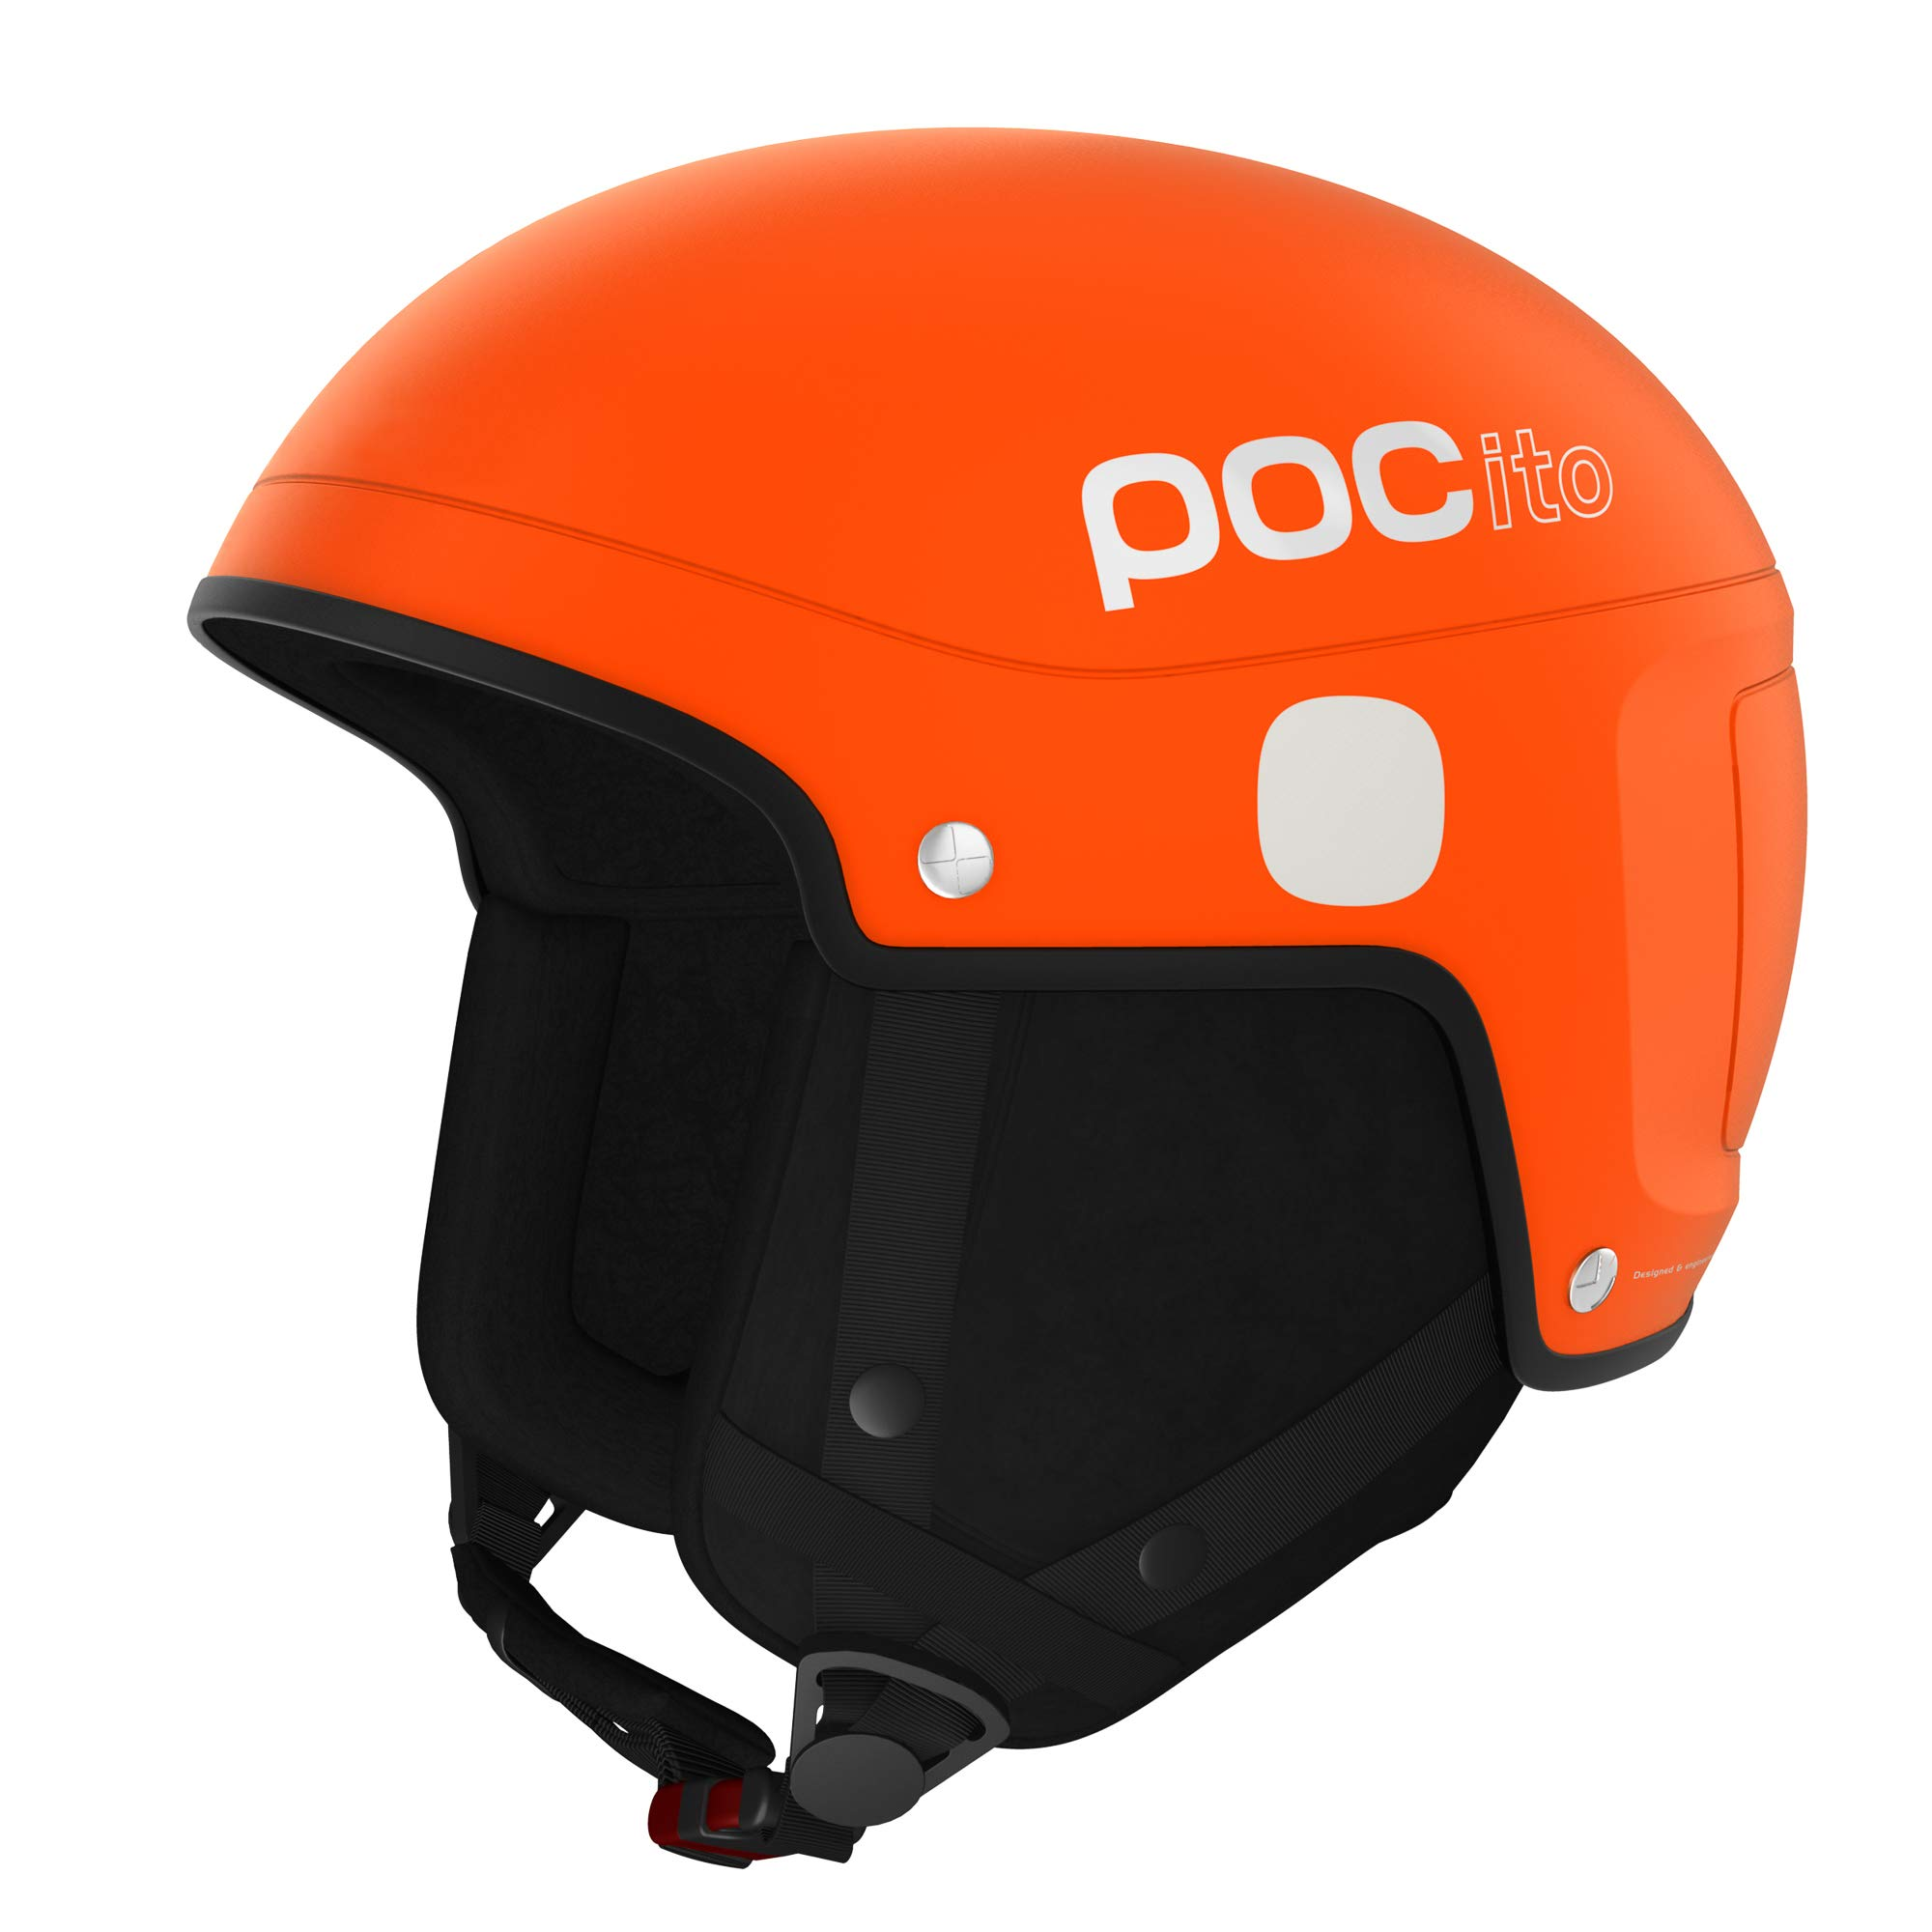 POC POCito Skull Light, Children's Helmet, Fluorescent Orange, M/L